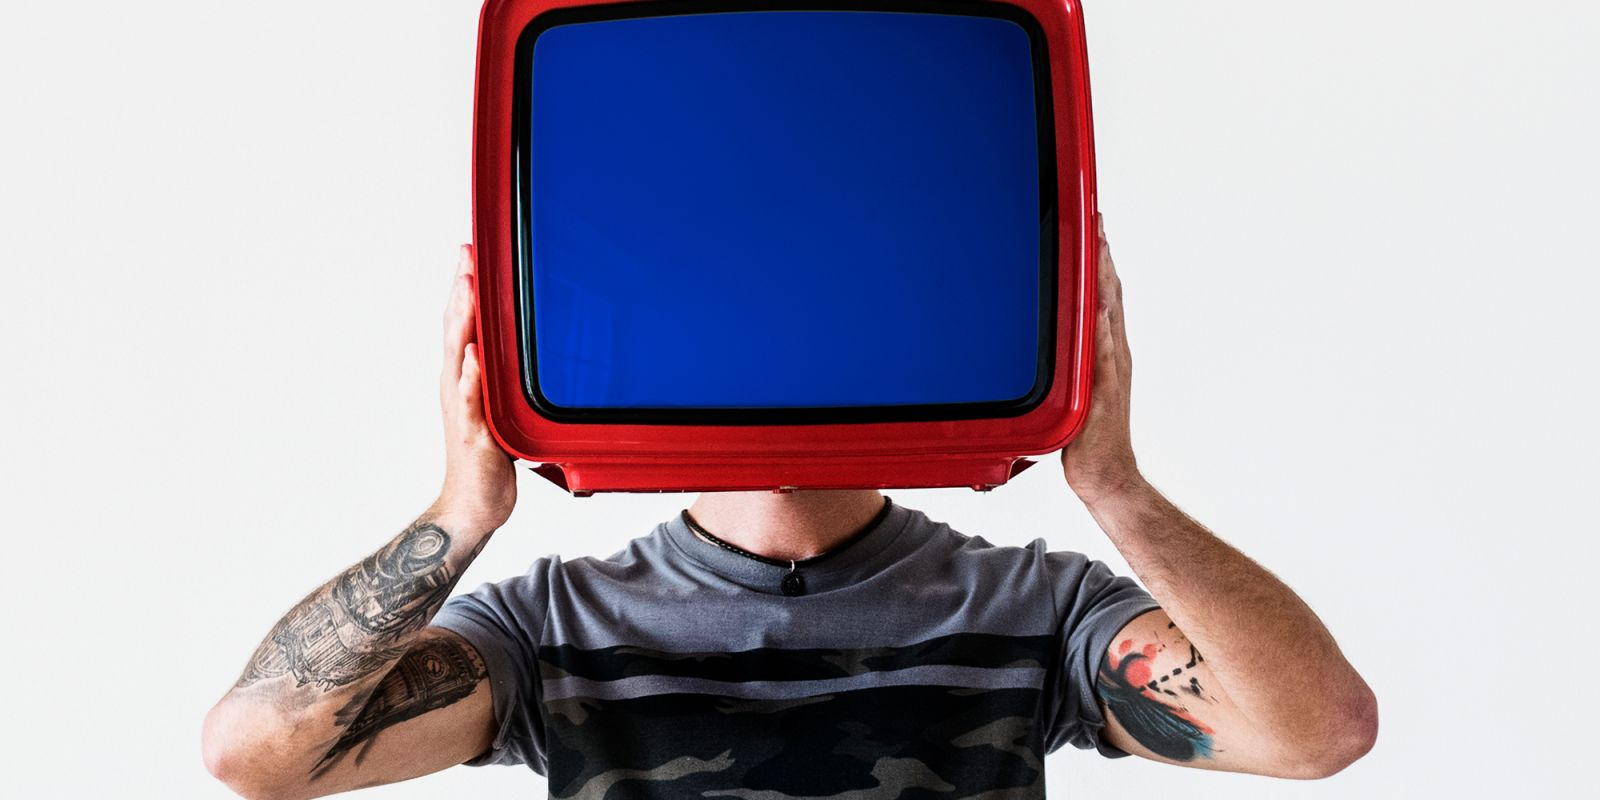 A picture of a man holding a TV screen in front of his face with a bright blue screen on the TV advert production company page.